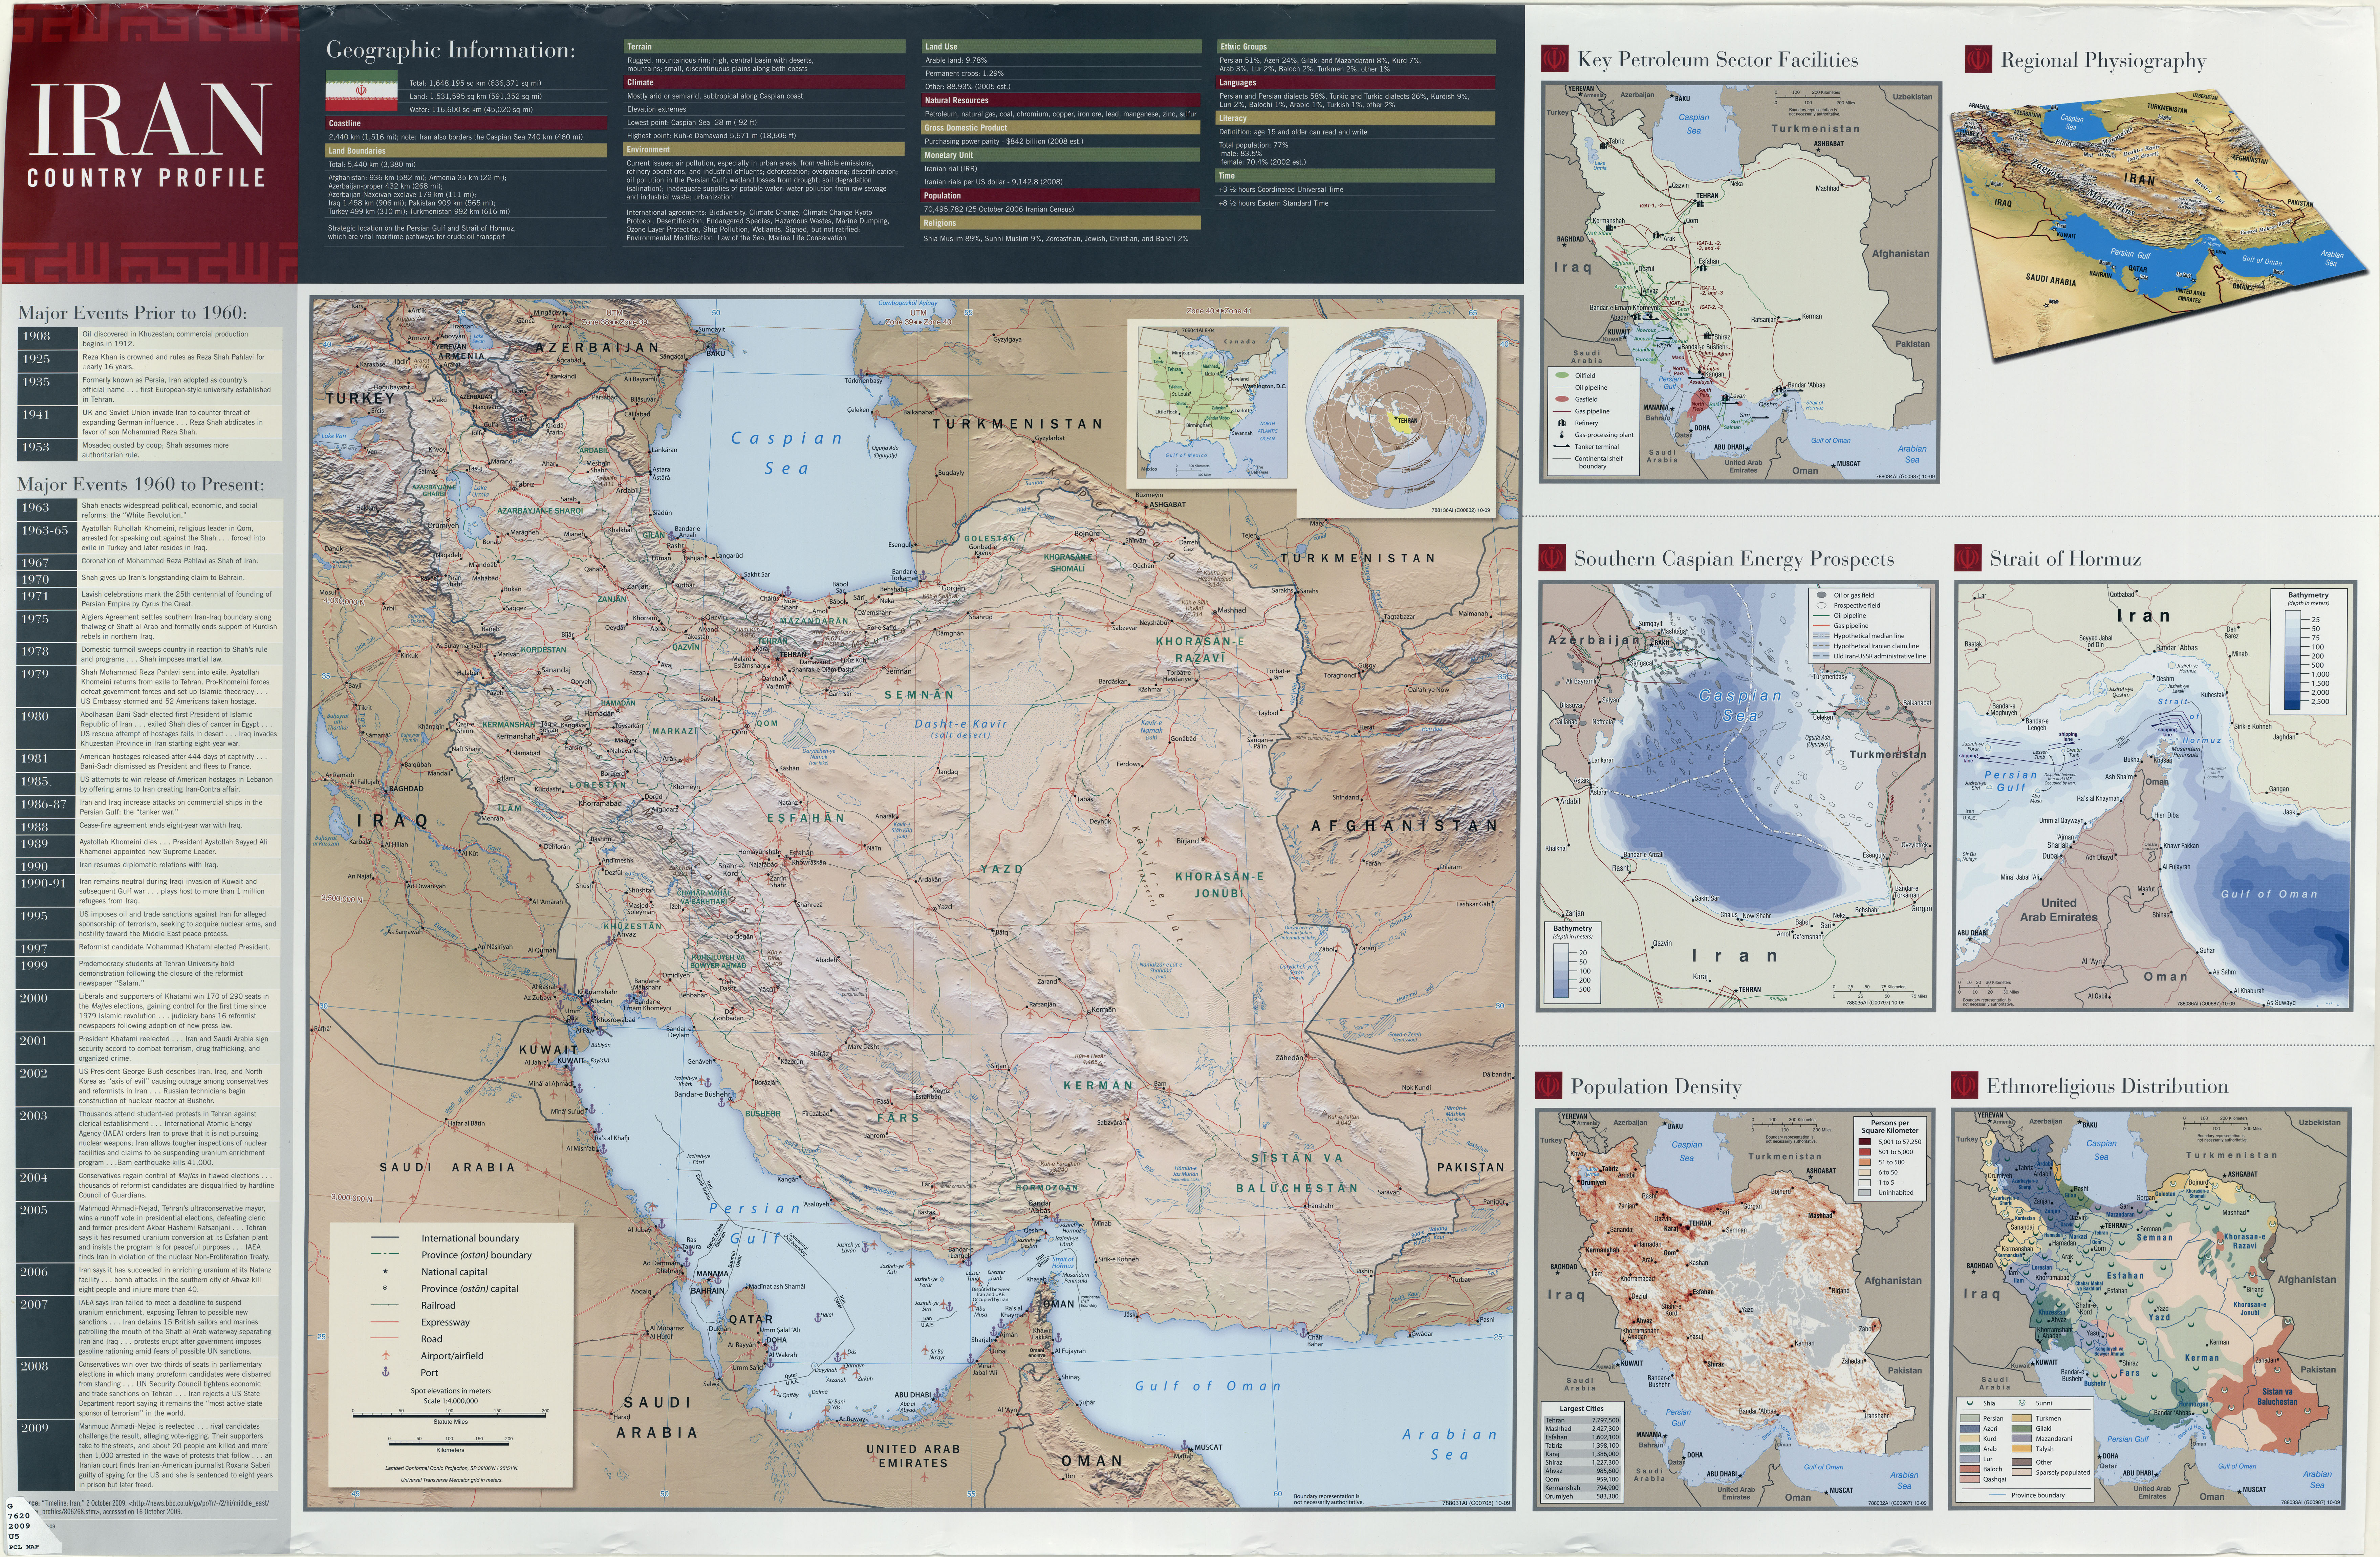 Iran Country Profile Map 2009 Cia Ut Scan